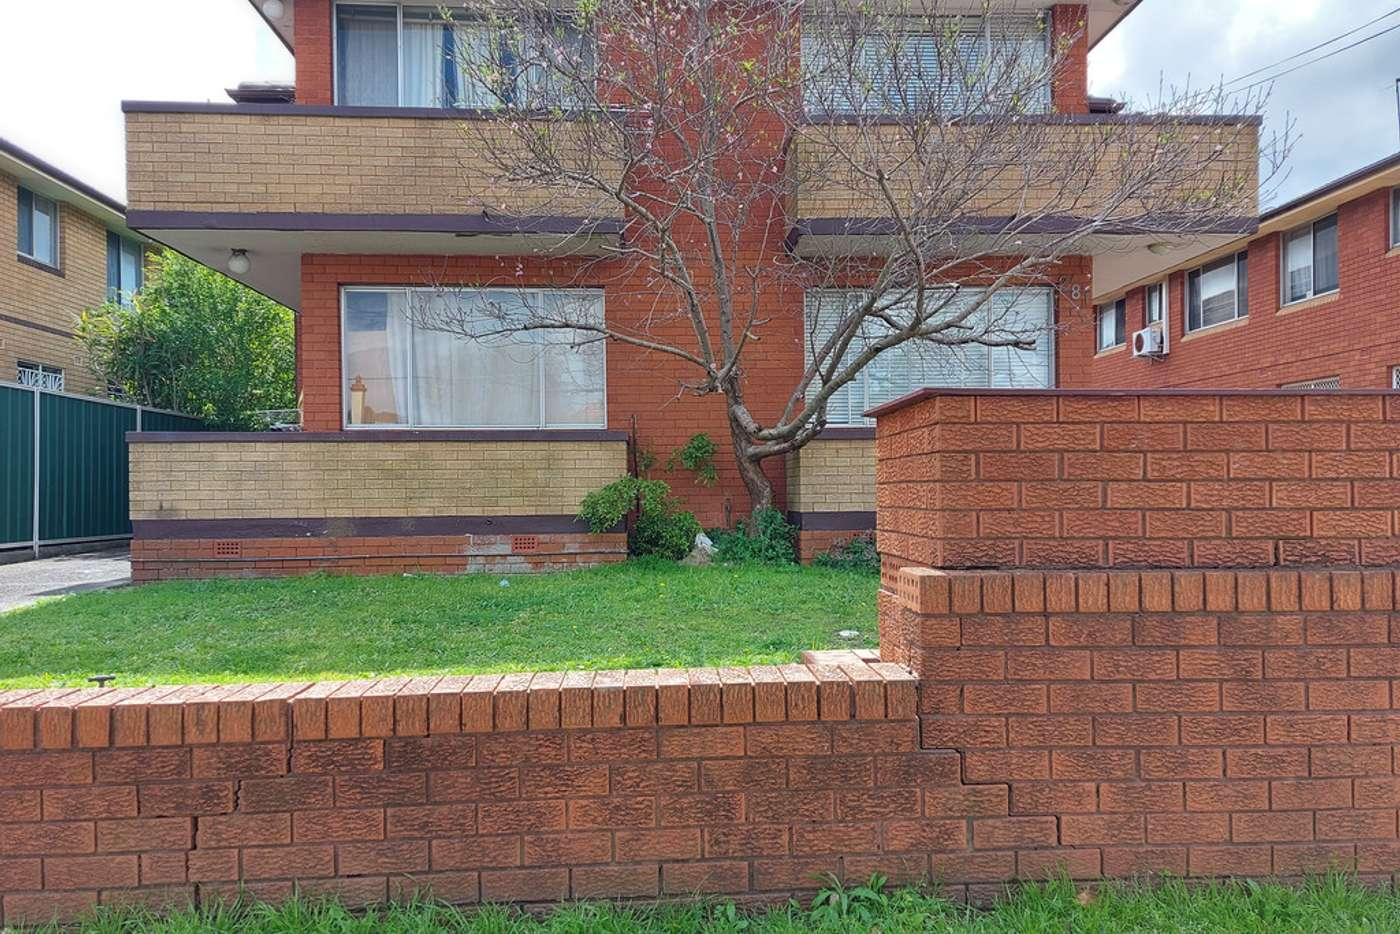 Main view of Homely unit listing, 4/281 Lakemba Street, Wiley Park NSW 2195